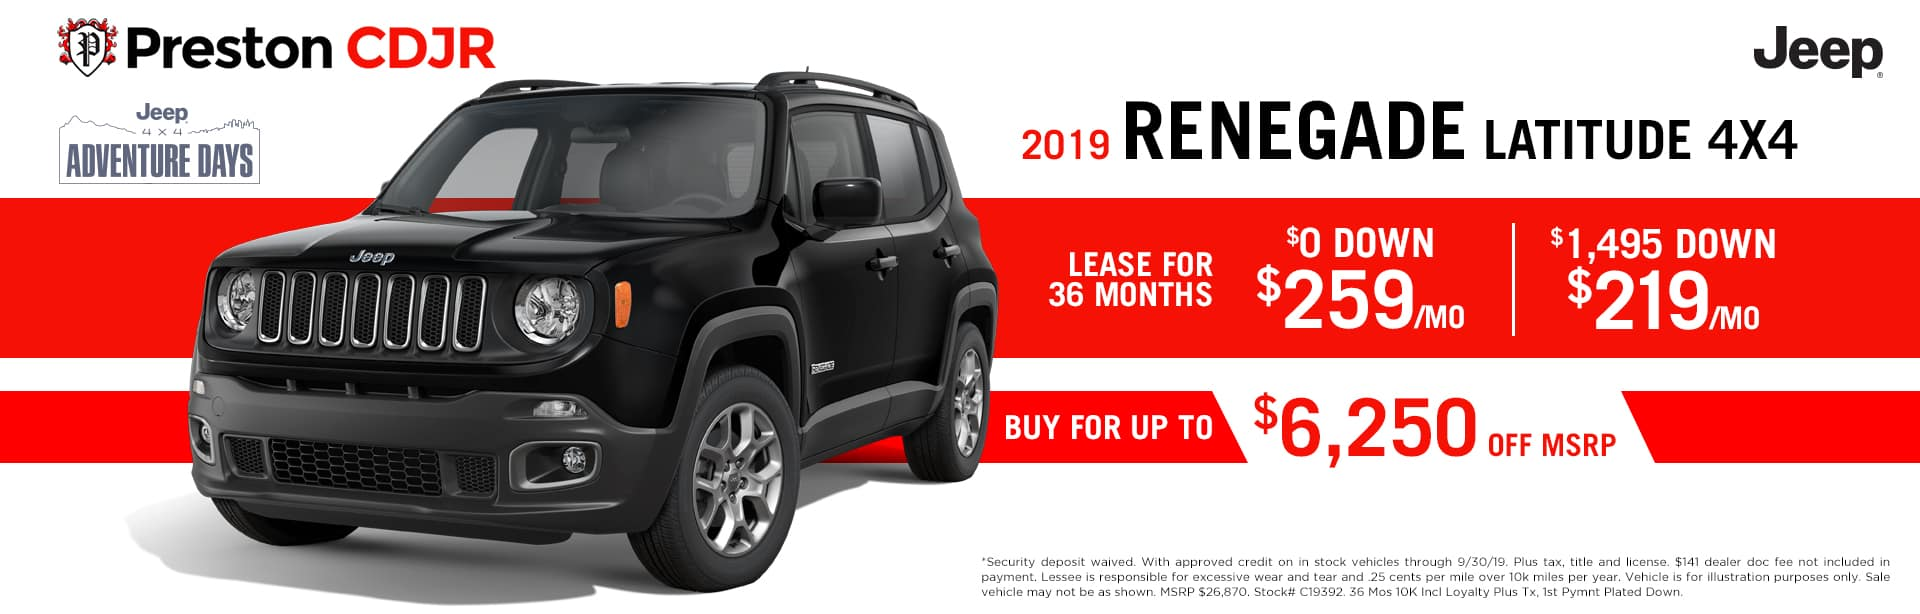 September special on the 2019 Jeep Renegade